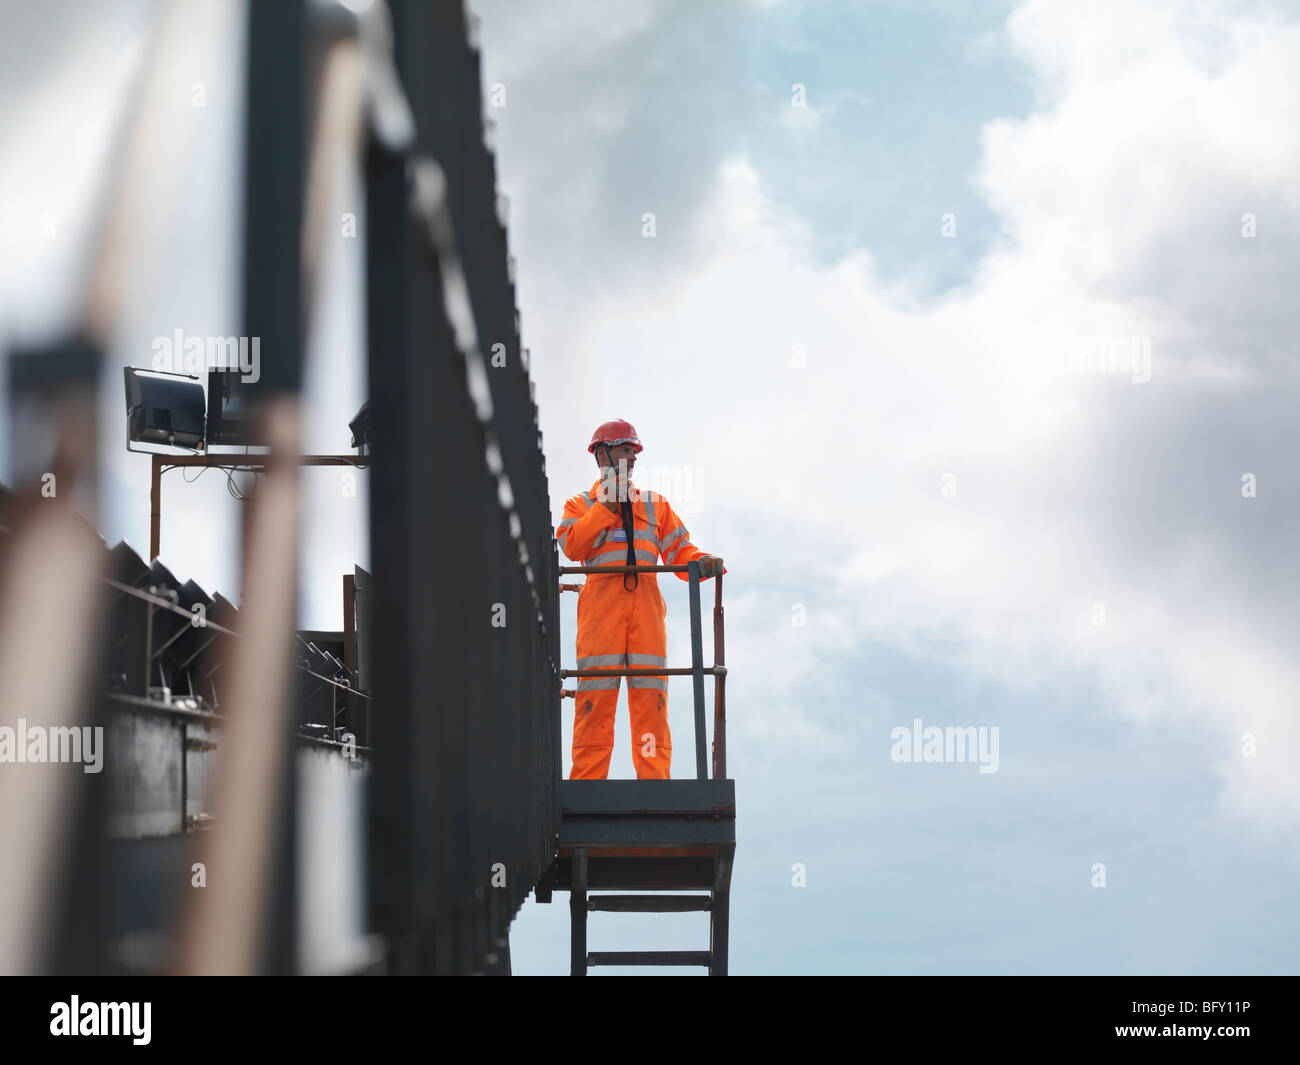 Coal Worker On Viewing Platform - Stock Image